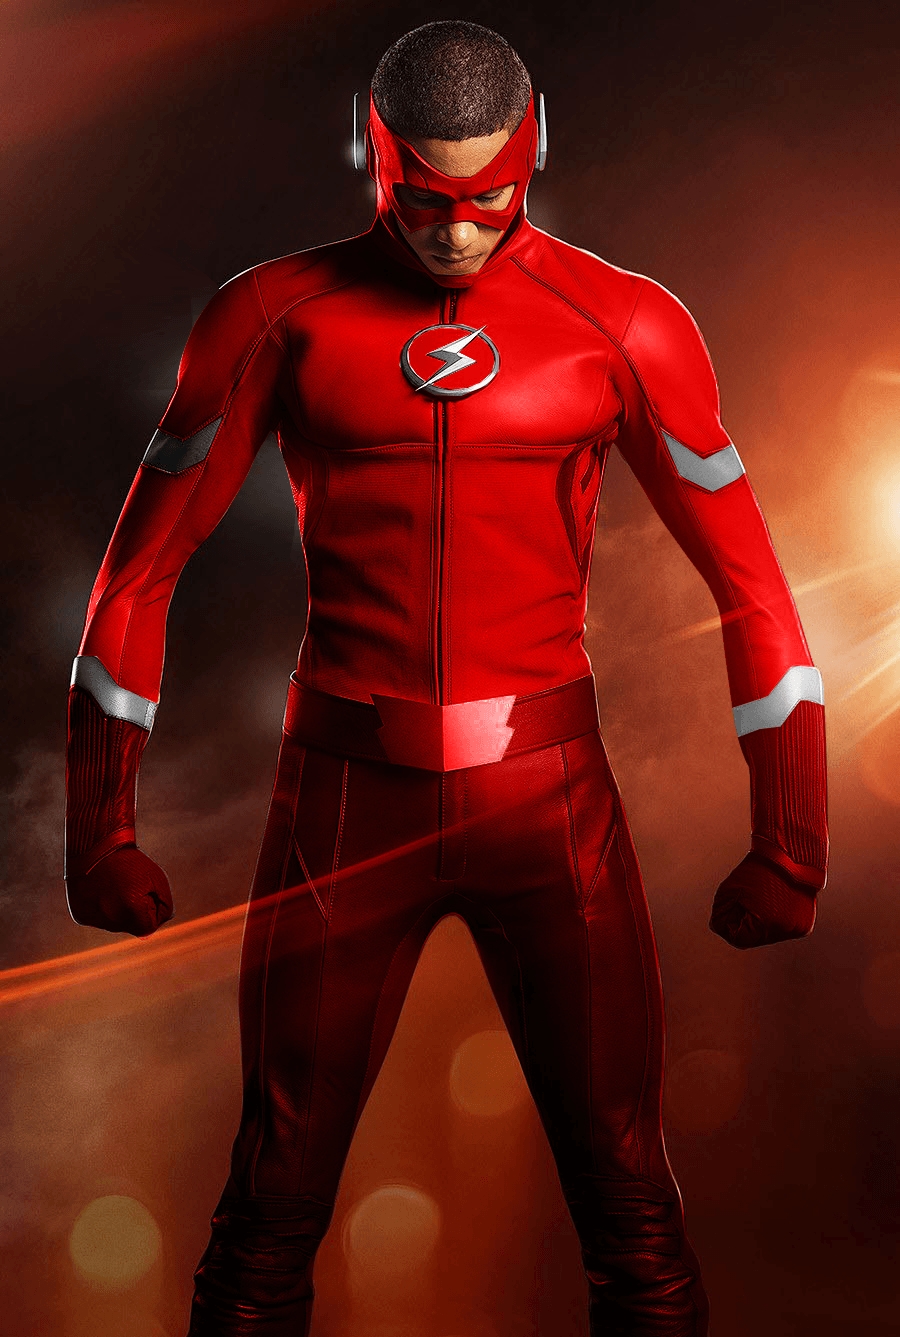 You Can't Catch Me Barry! by Bosslogix